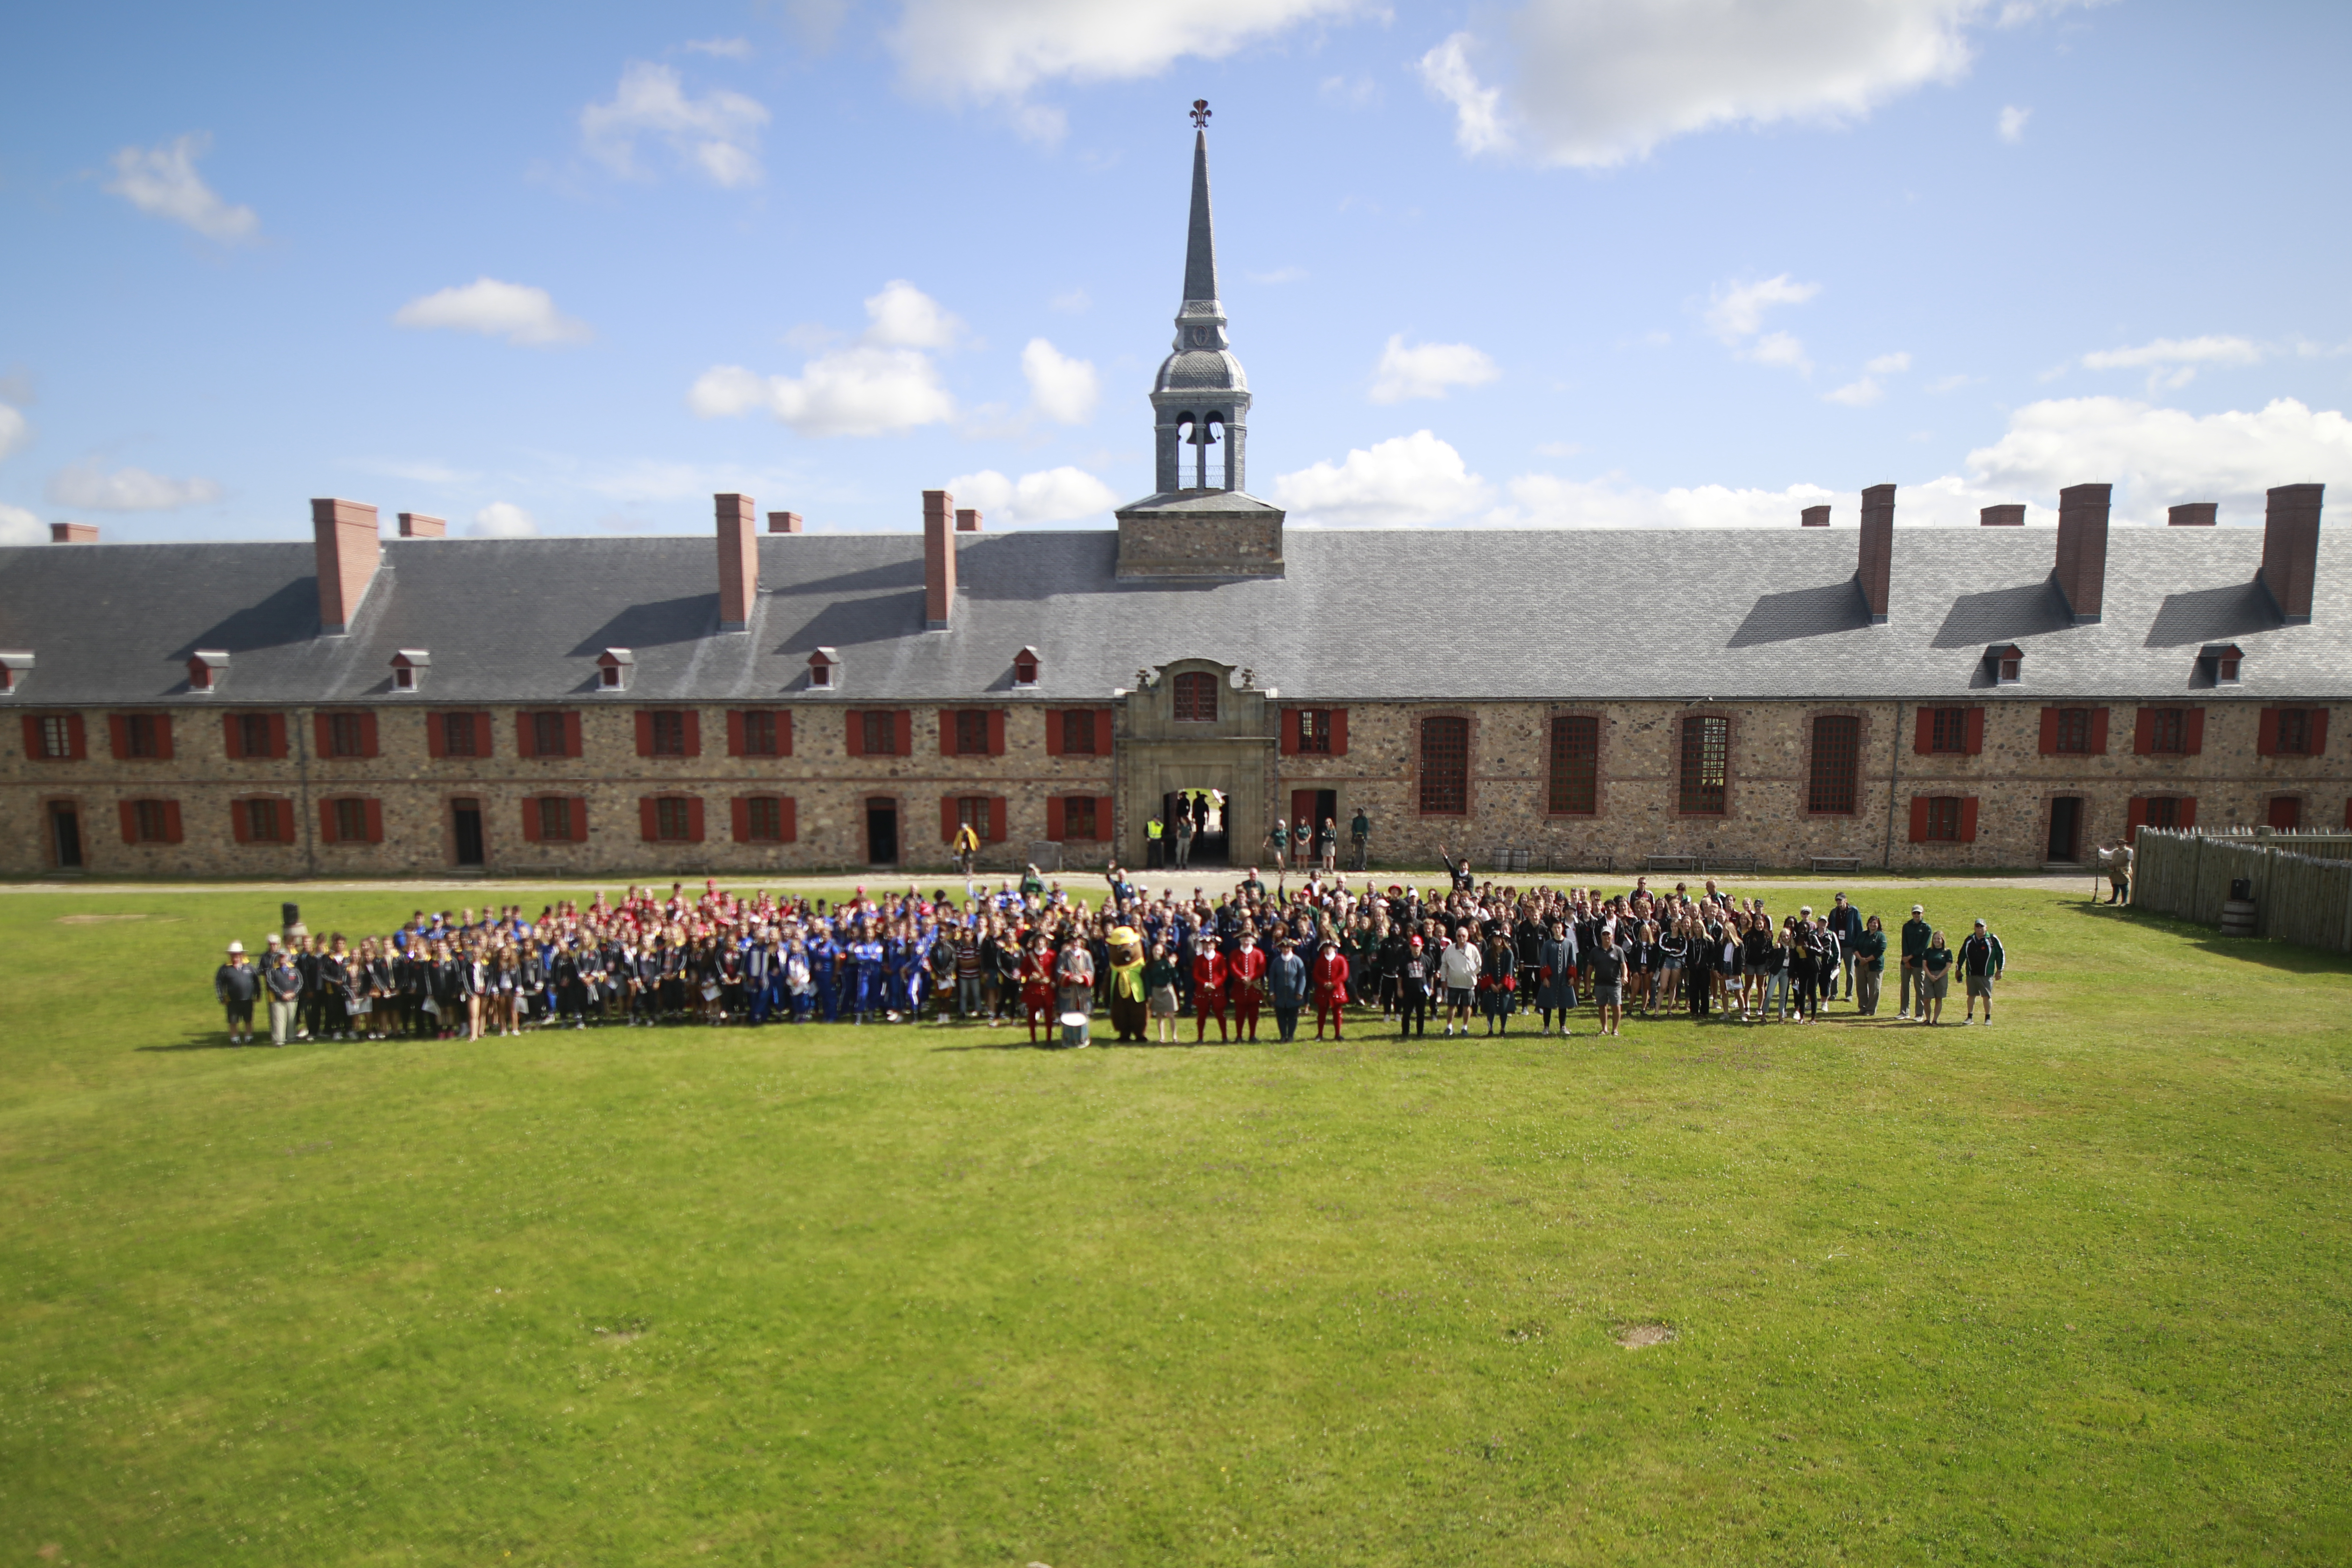 Drone shot of our group at the Fortress of Louisbourg